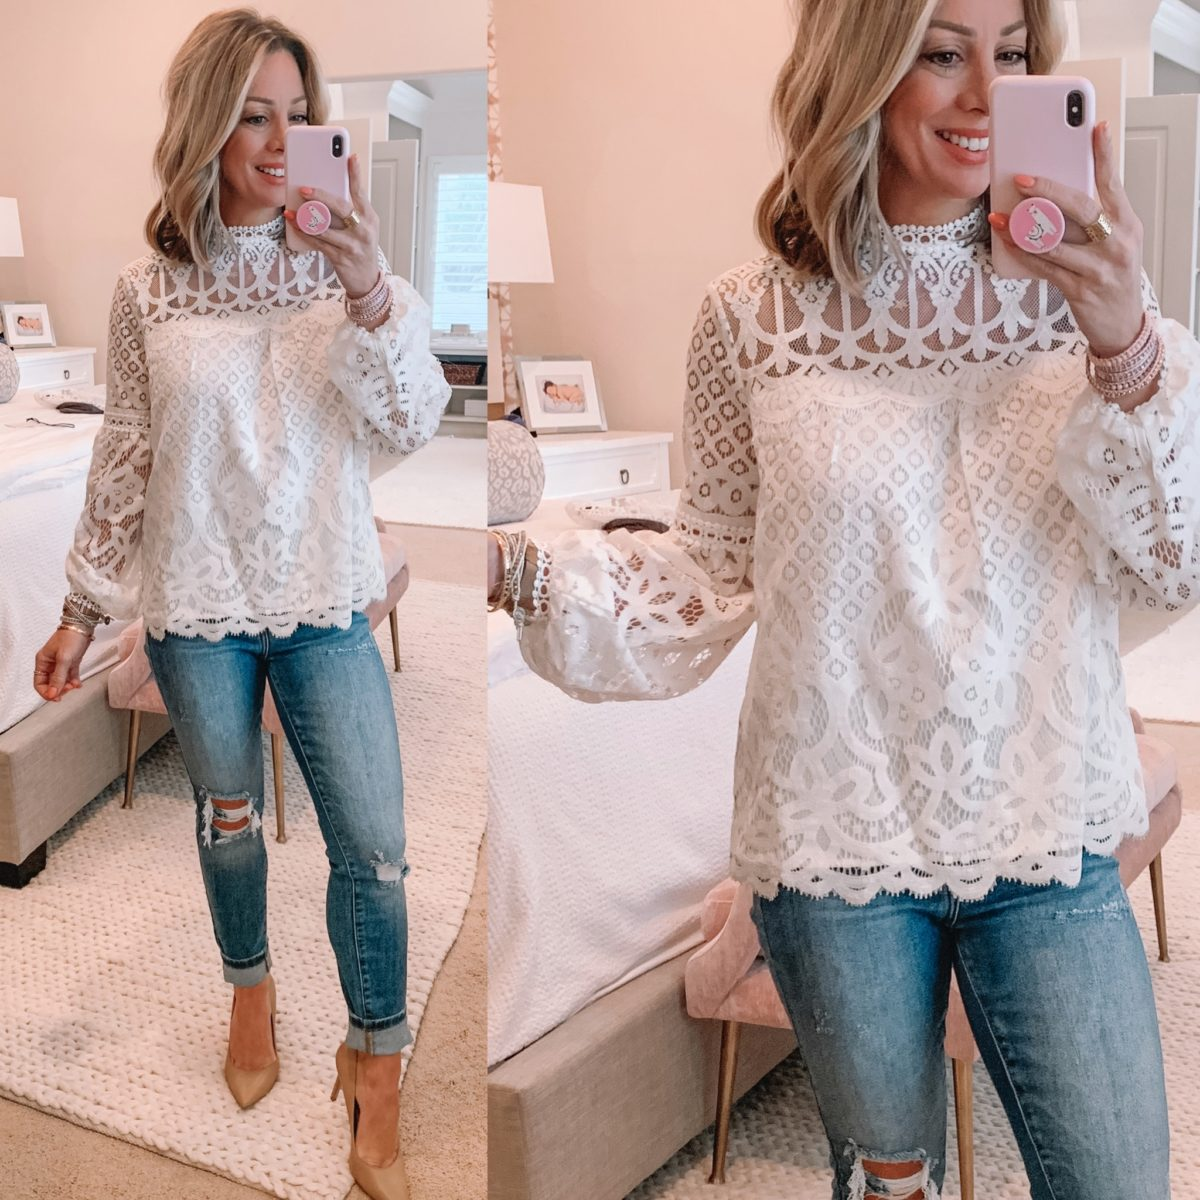 White Lace Top, Distressed Jeans, Nude Heels